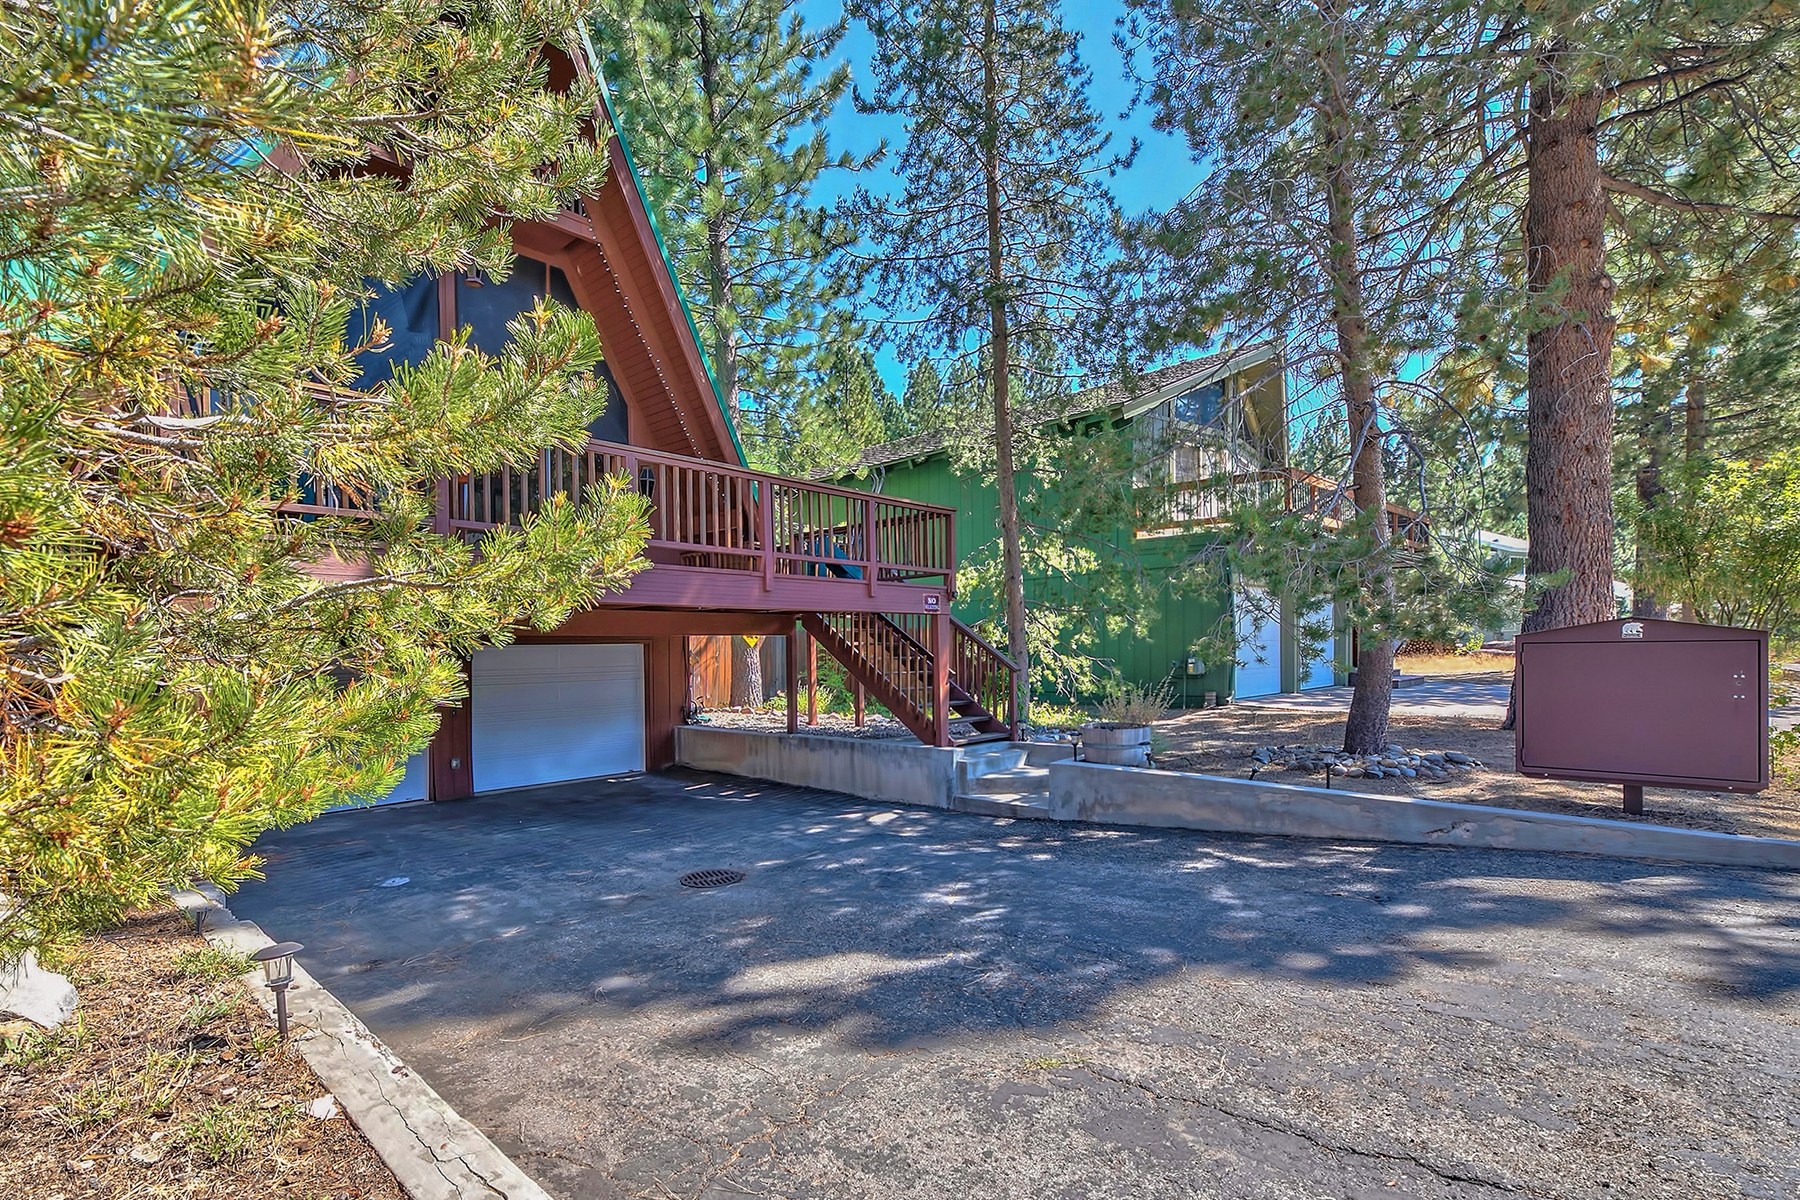 Property for Active at 923 Creekwood Drive, South Lake Tahoe, CA 96150 923 Creekwood Drive South Lake Tahoe, California 96150 United States